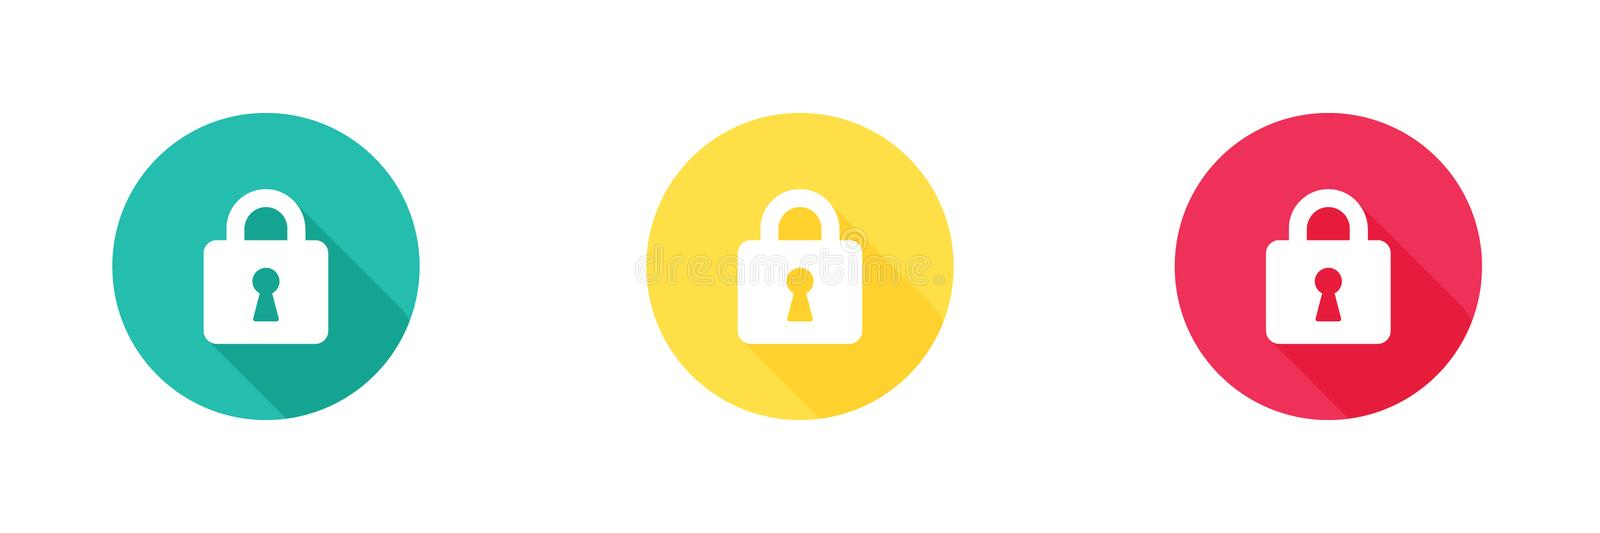 Lock vector icon in green yellow and red with long shadow effect, unlock symbol. Simple, flat design, Solid icons style for royalty free illustration